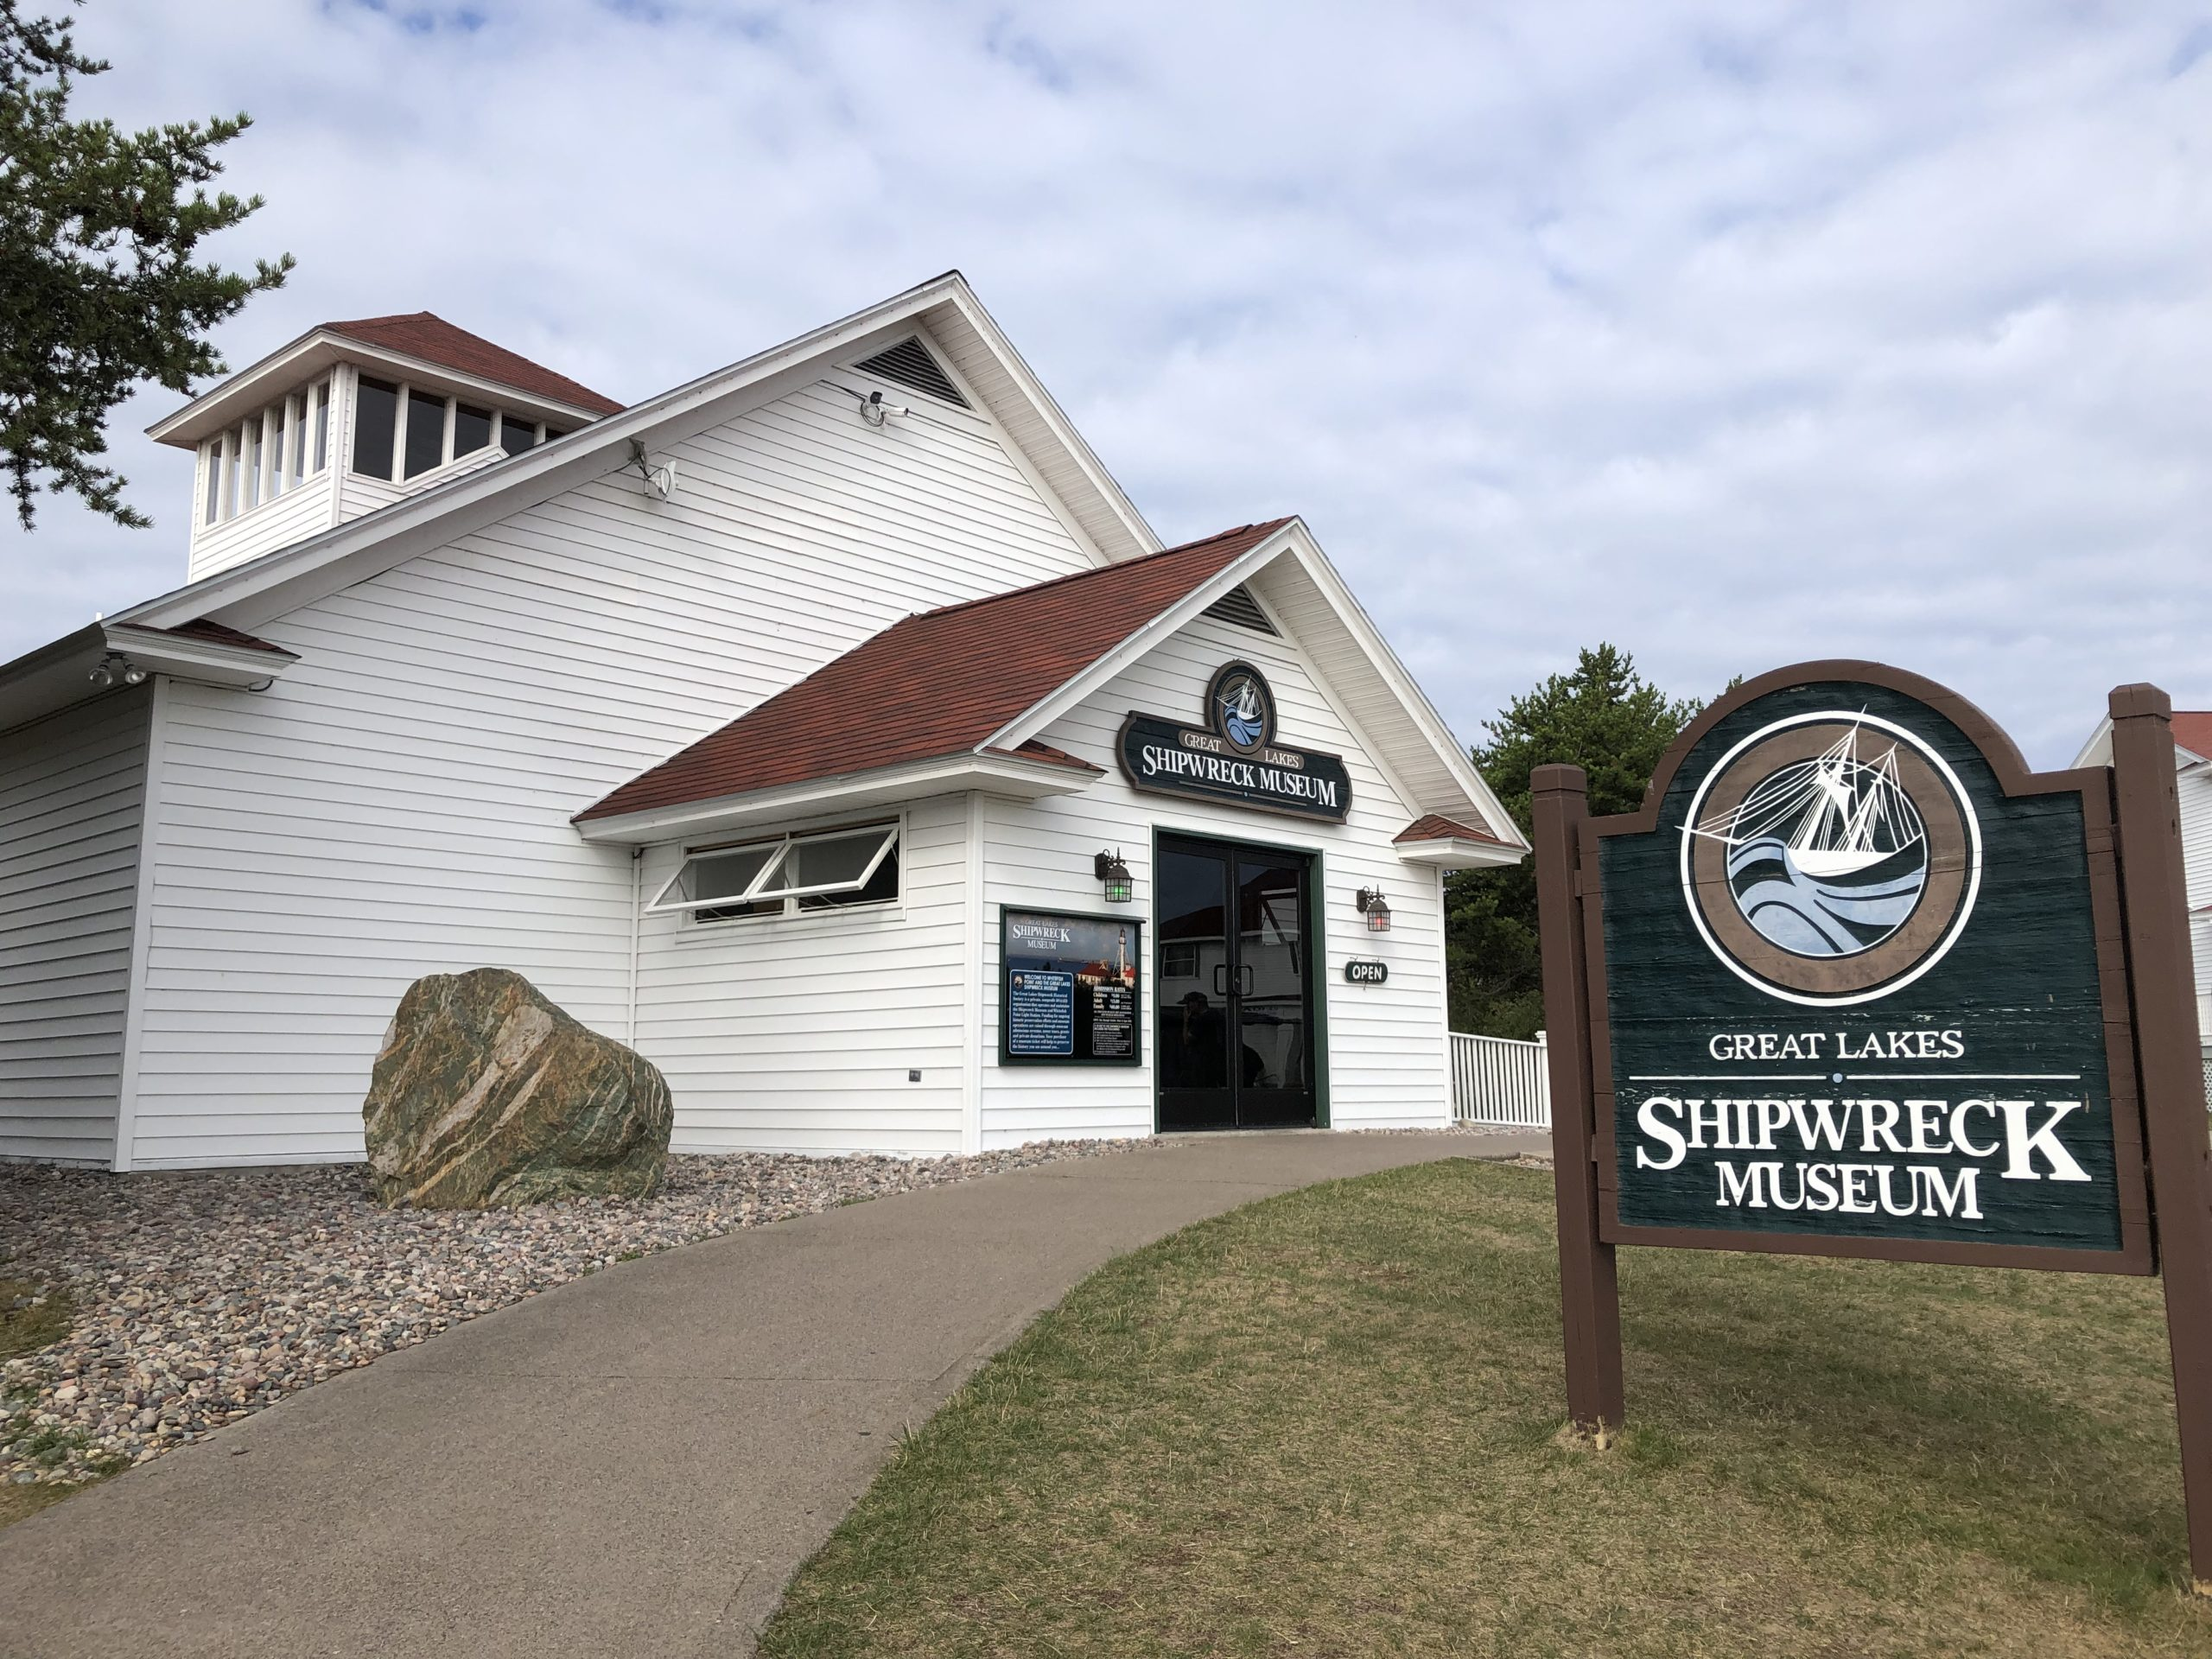 Shipwreck Museum at whitefish point